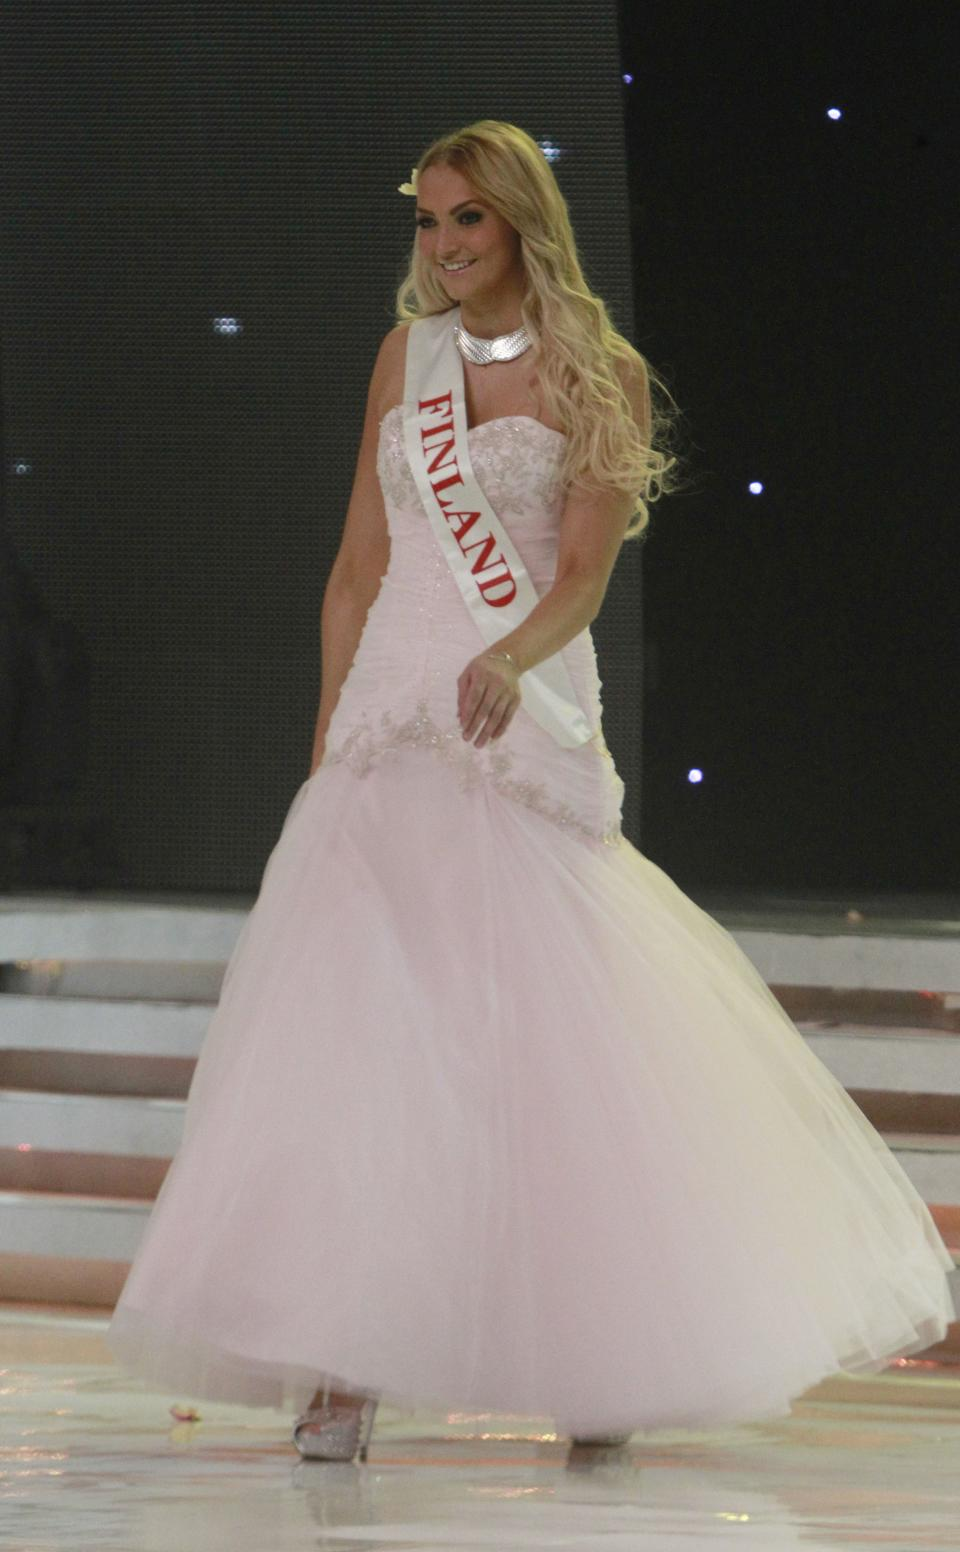 Miss Finland Maija Kerisalmi walks on stage during the opening of the 63rd Miss World Pageant ceremony in Nusa Dua, Bali, Indonesia on Sunday, Sept. 8, 2013. (AP Photo/Firdia Lisnawati)